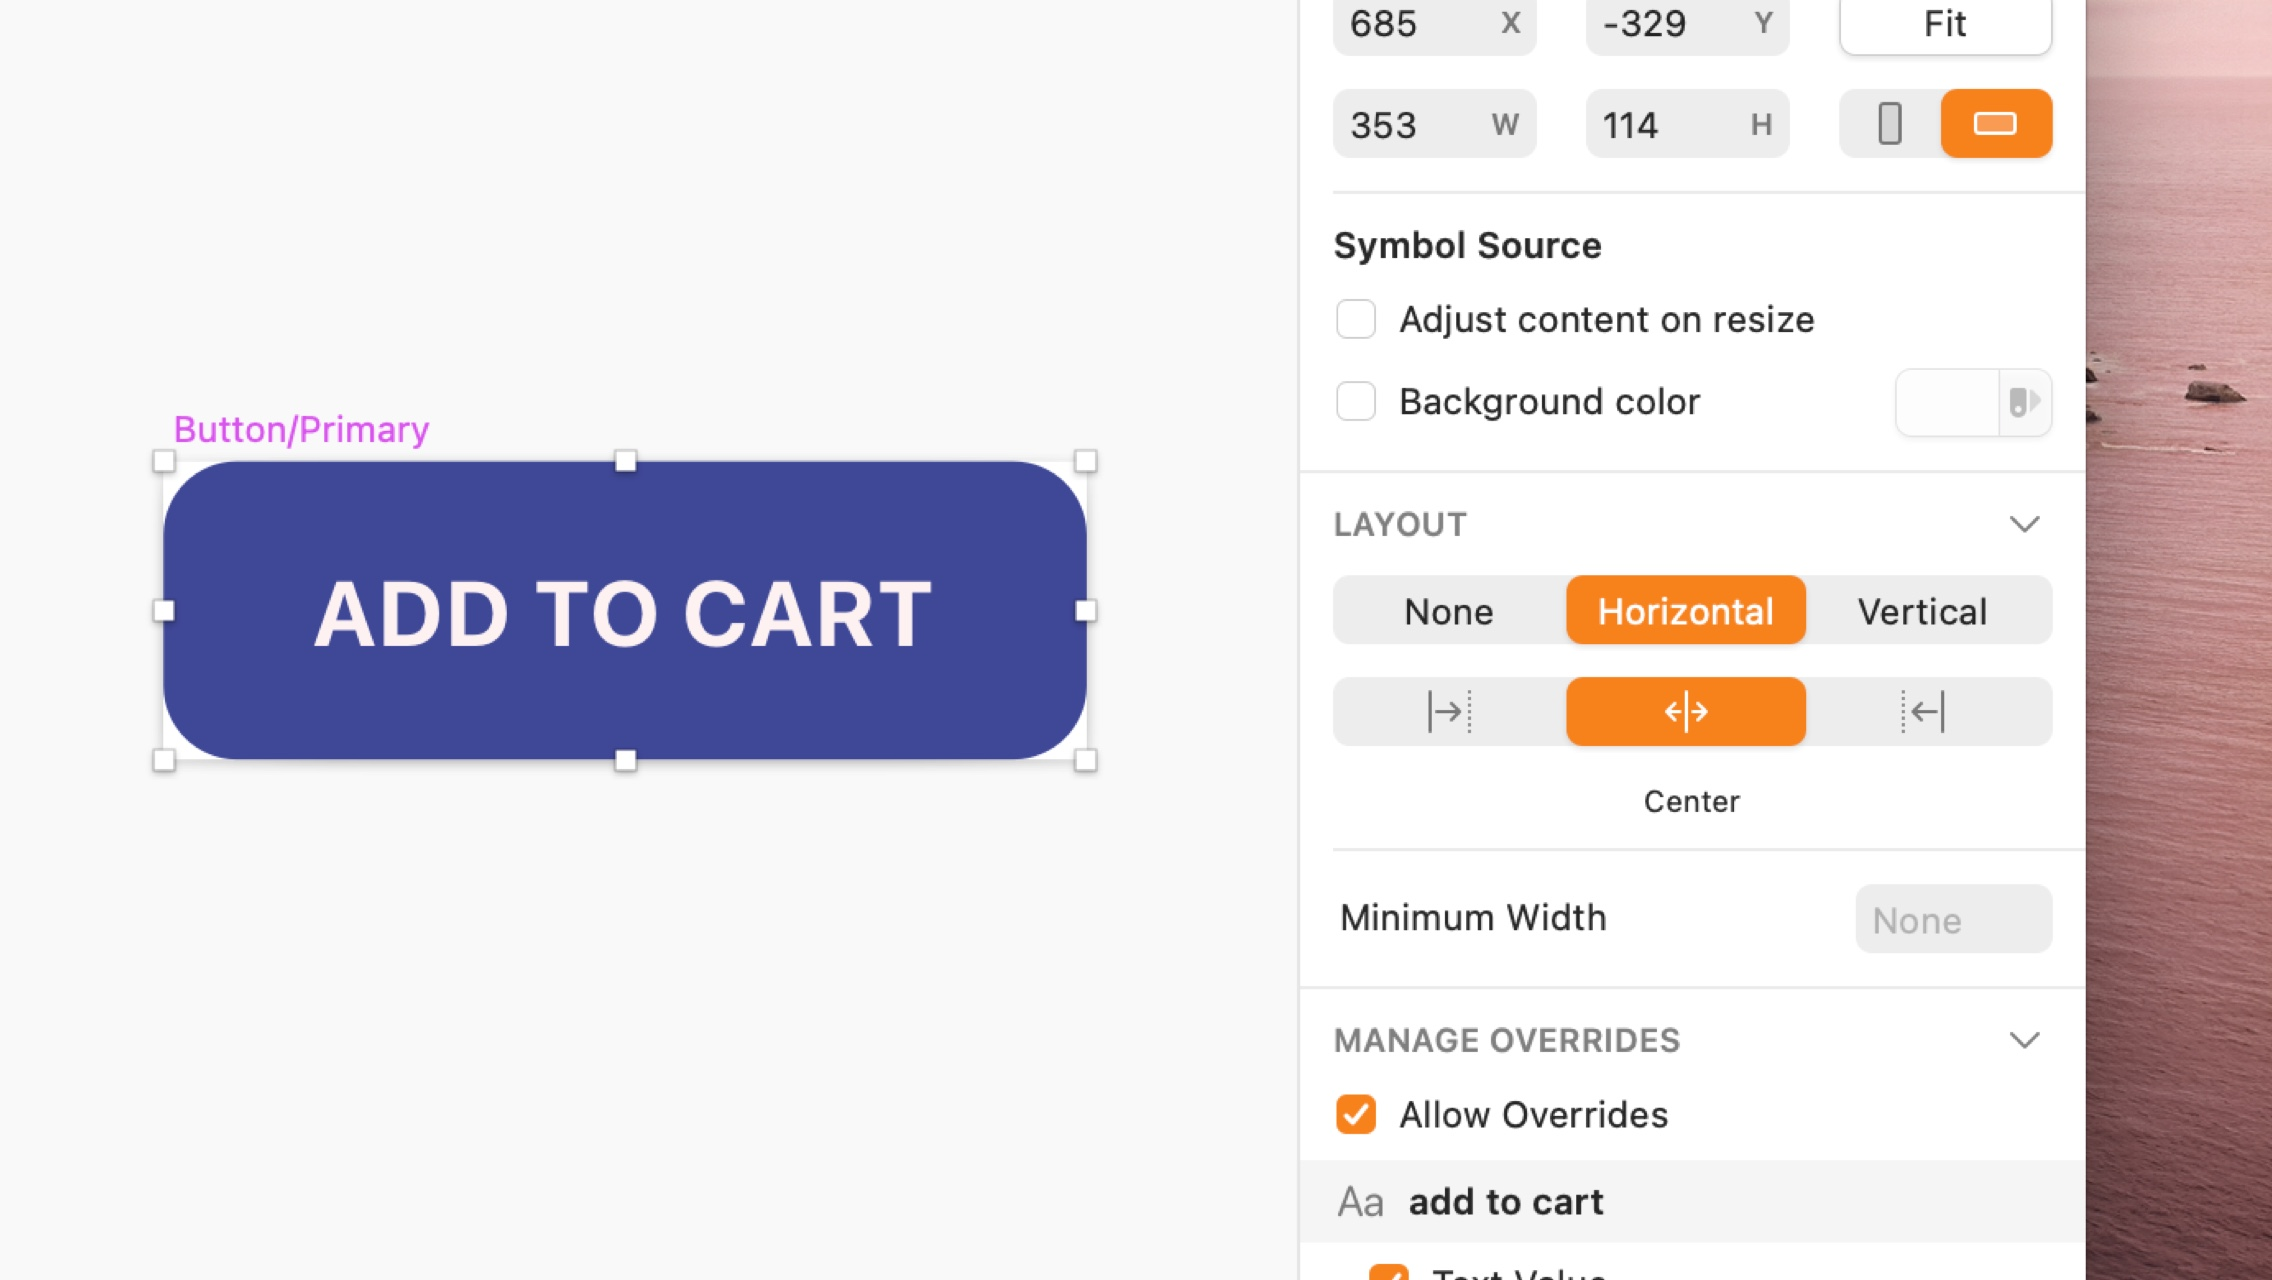 An image showing smart layout controls in the inspector in Sketch